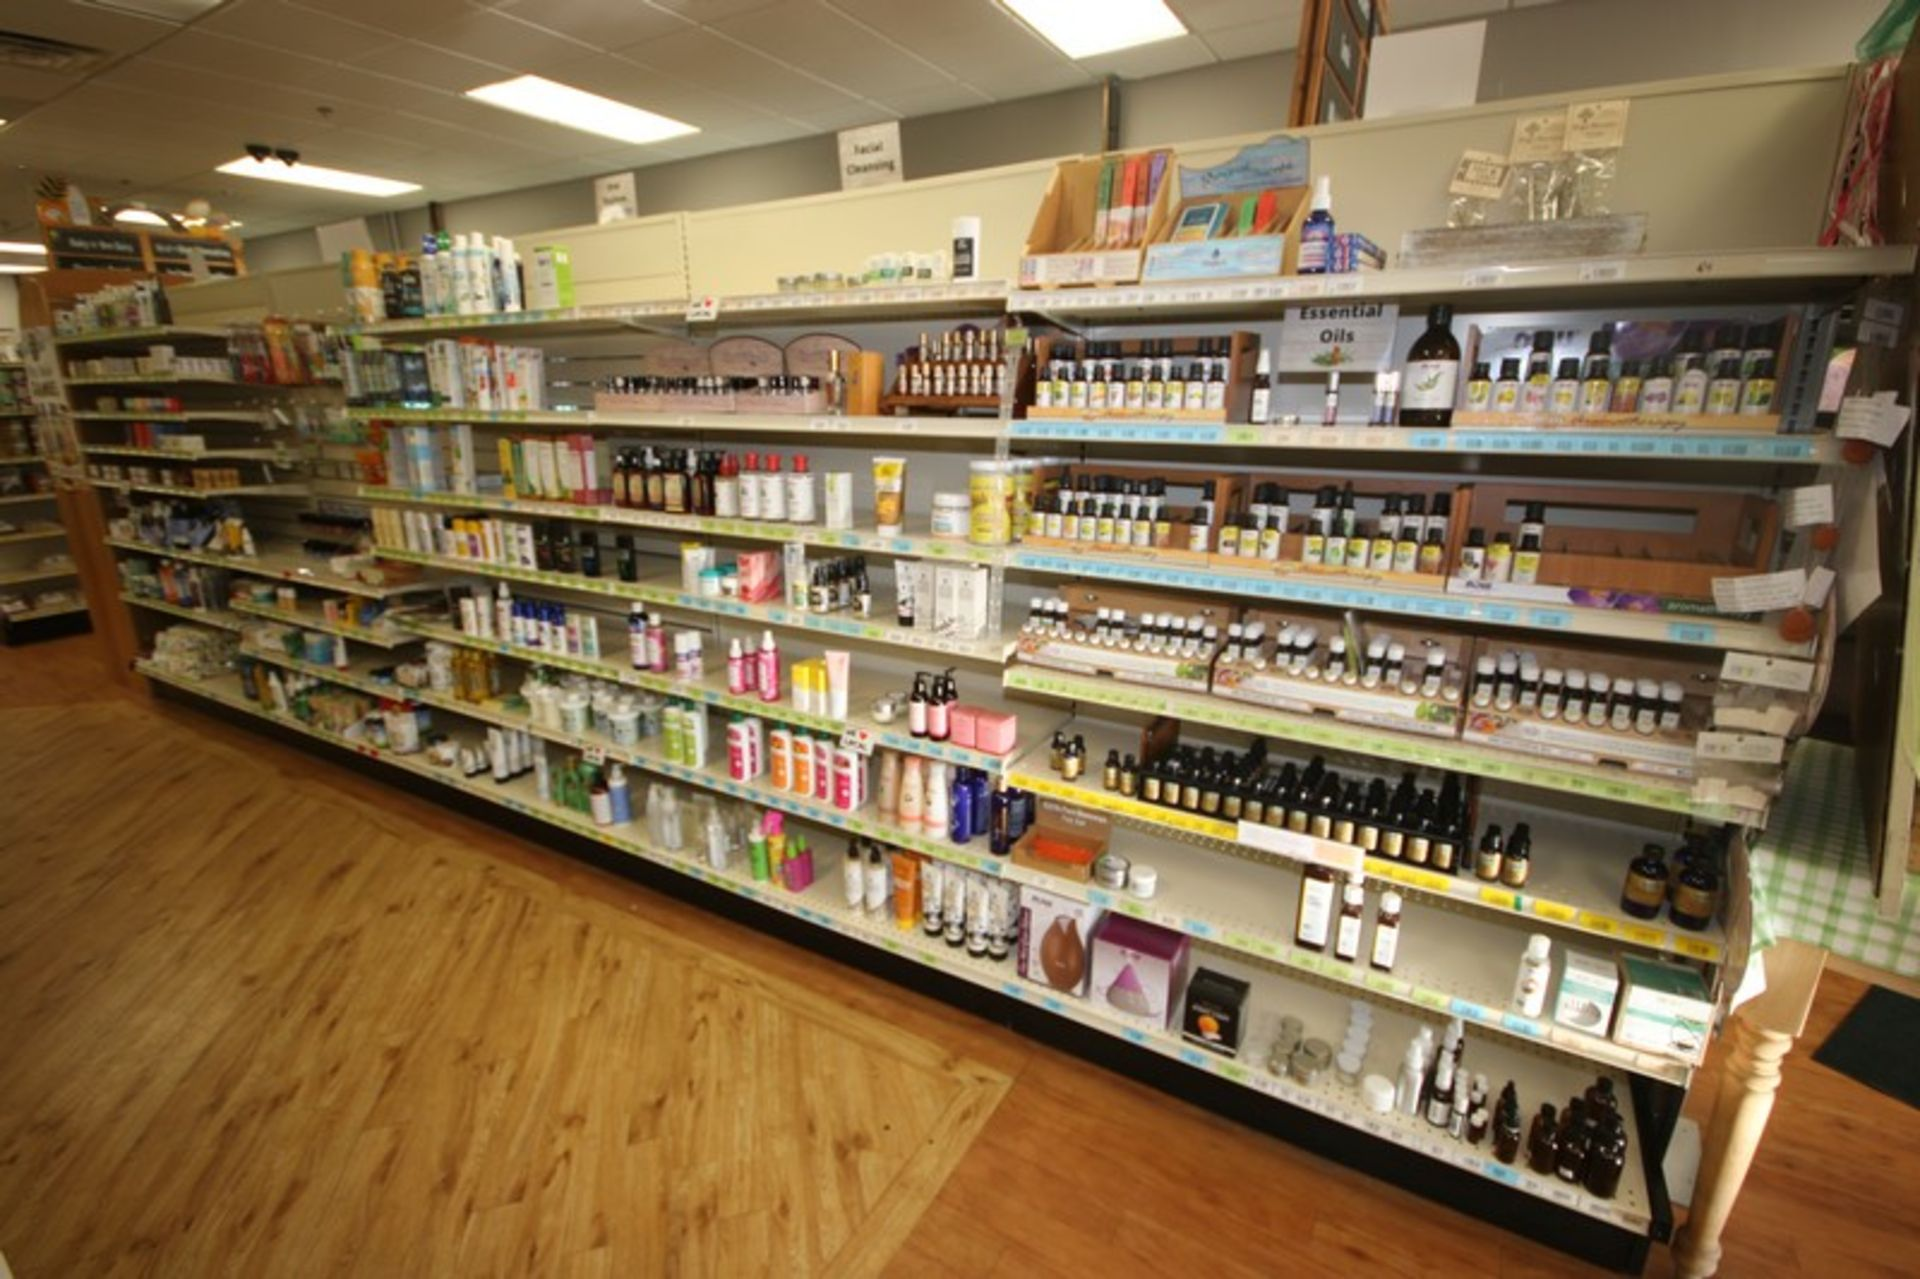 Feet of Double Sided Super Market Shelving, with Shelves (NOTE: SOLD BY THE FOOT) (Located in